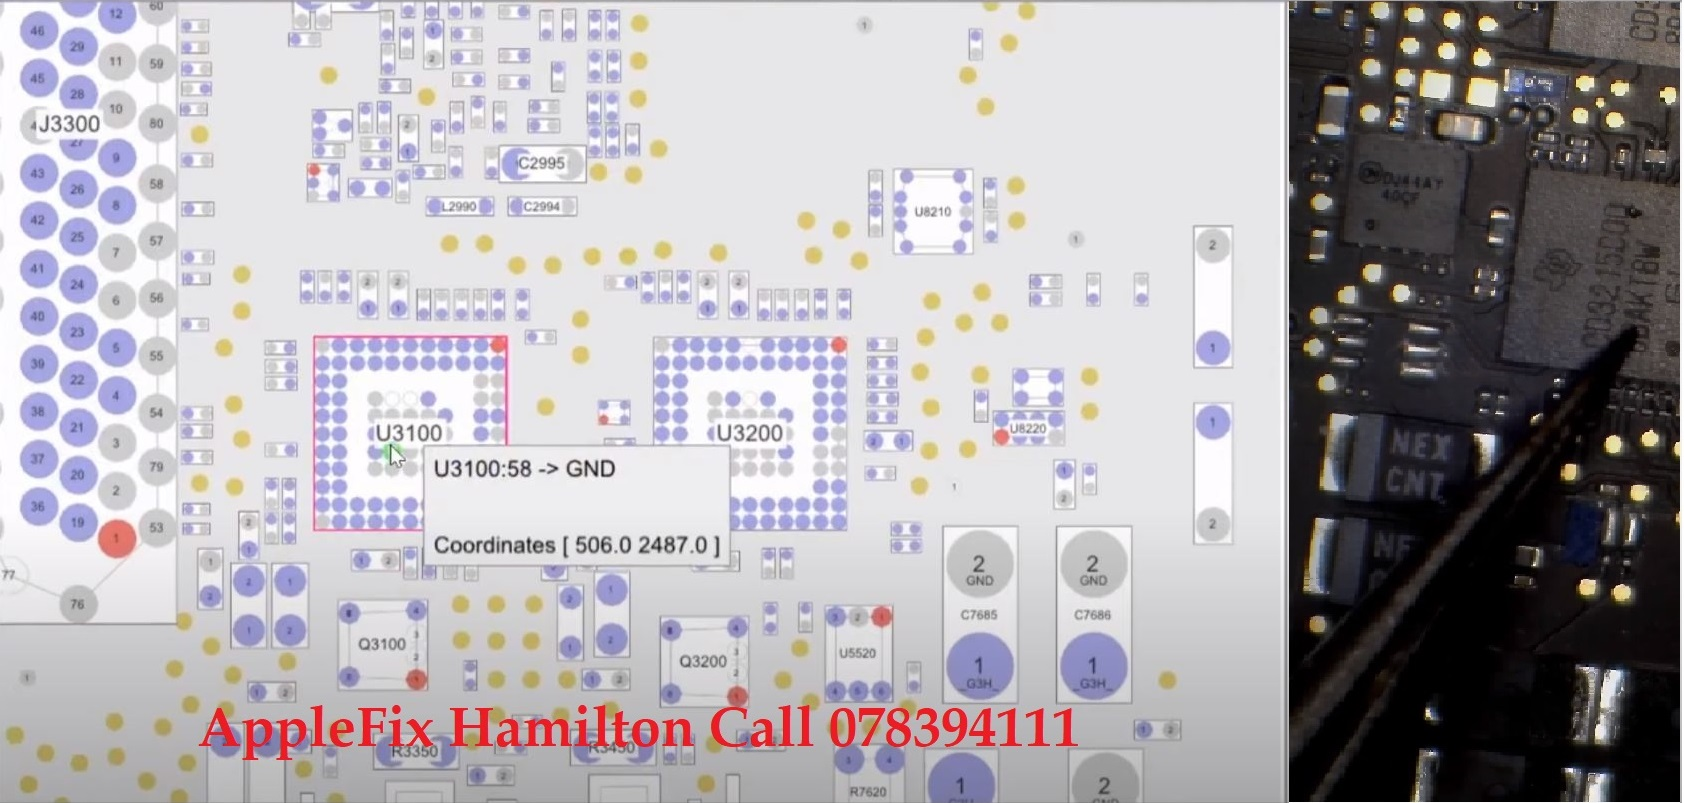 Macbook pro A1708 dead, Type C power IC replacement